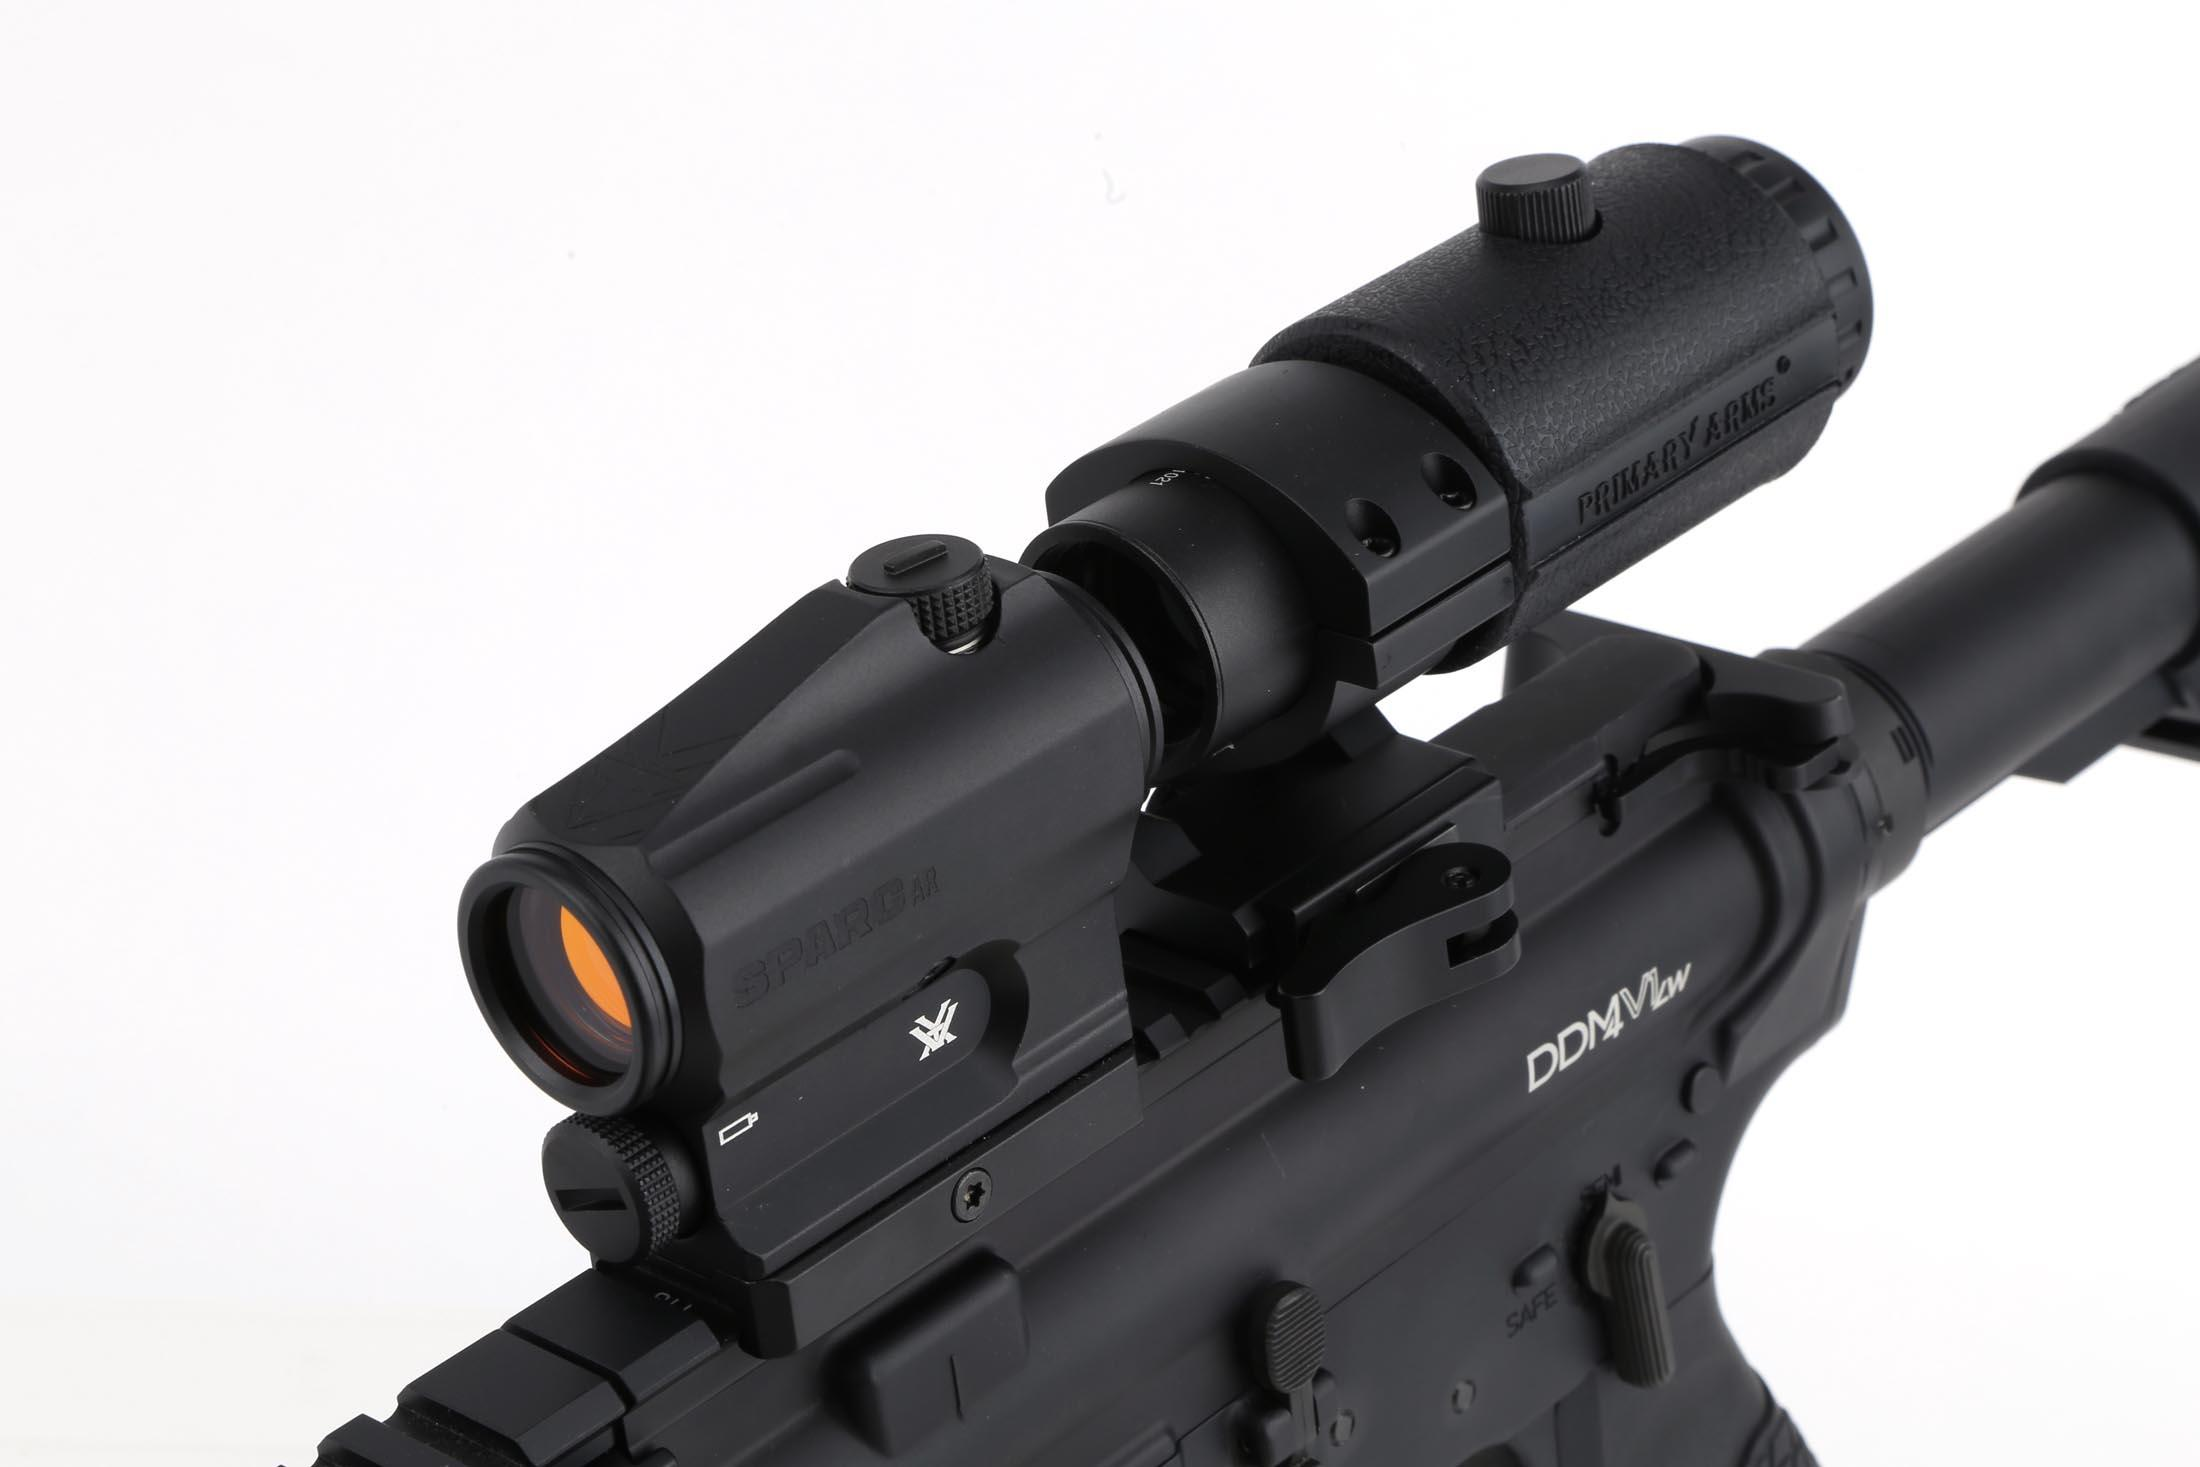 The Primary Arms 3x Magnifer LER Gen 4 combined with a red dot sight